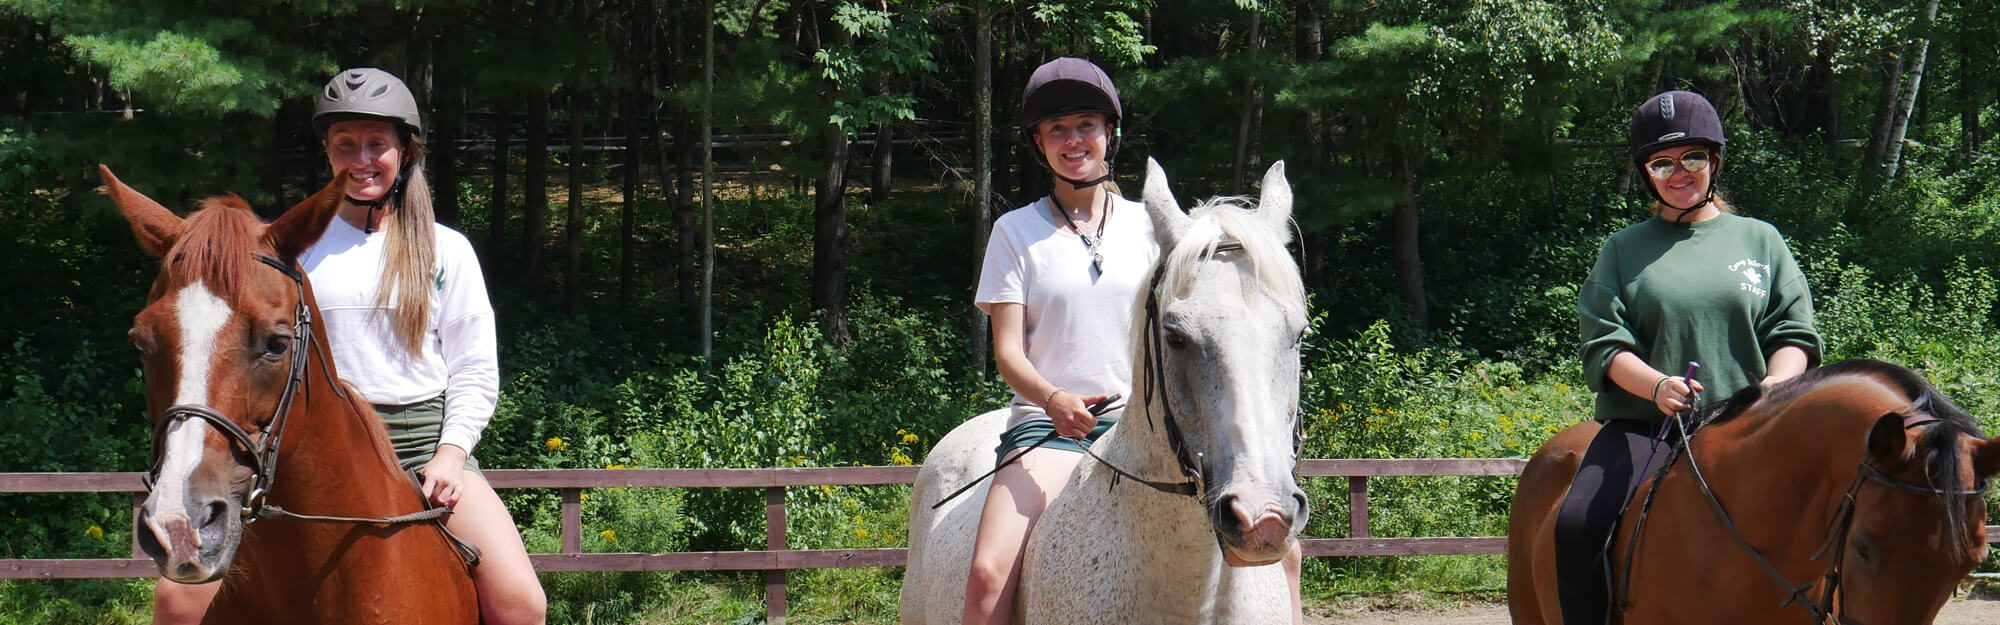 horse riding instructor jobs at camp